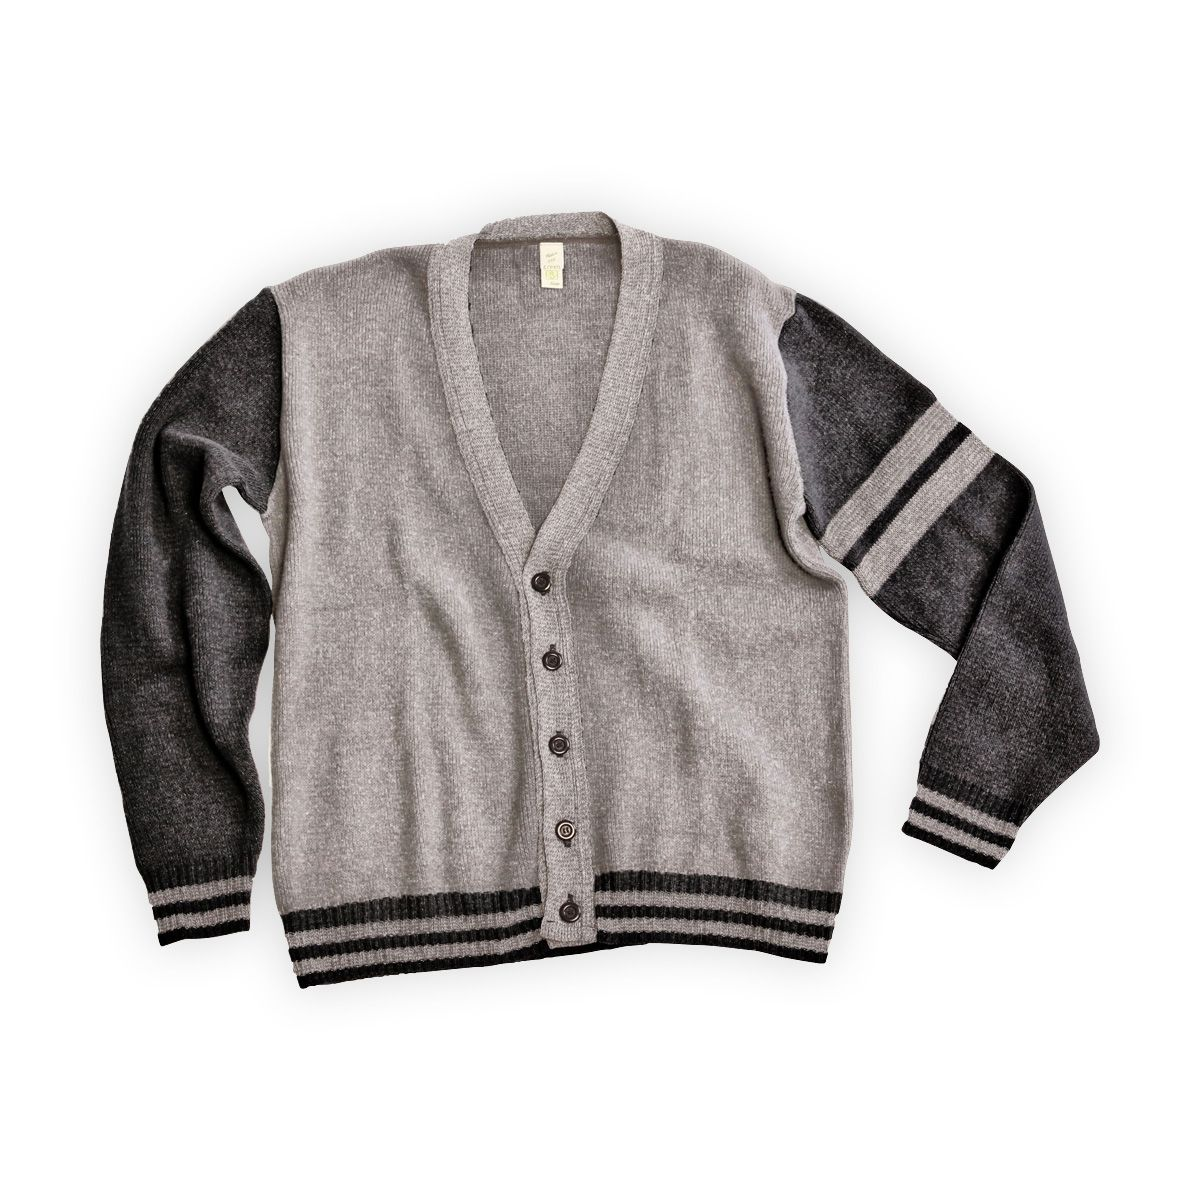 Men's Recycled USA-made Collegiate Cardigan | Made in USA clothing ...